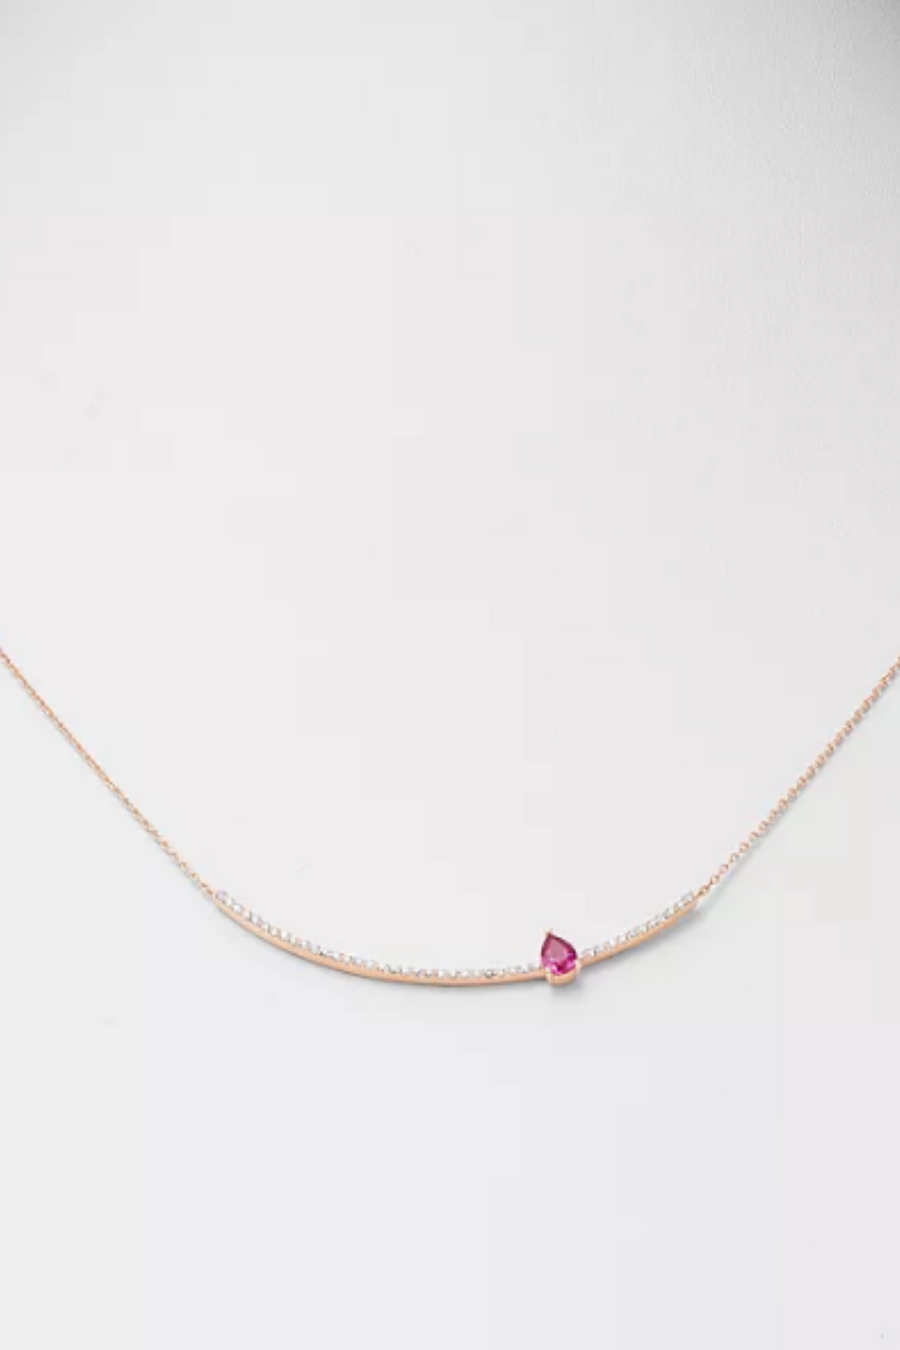 OWN YOUR STORY Pear Ruby Arc Necklace